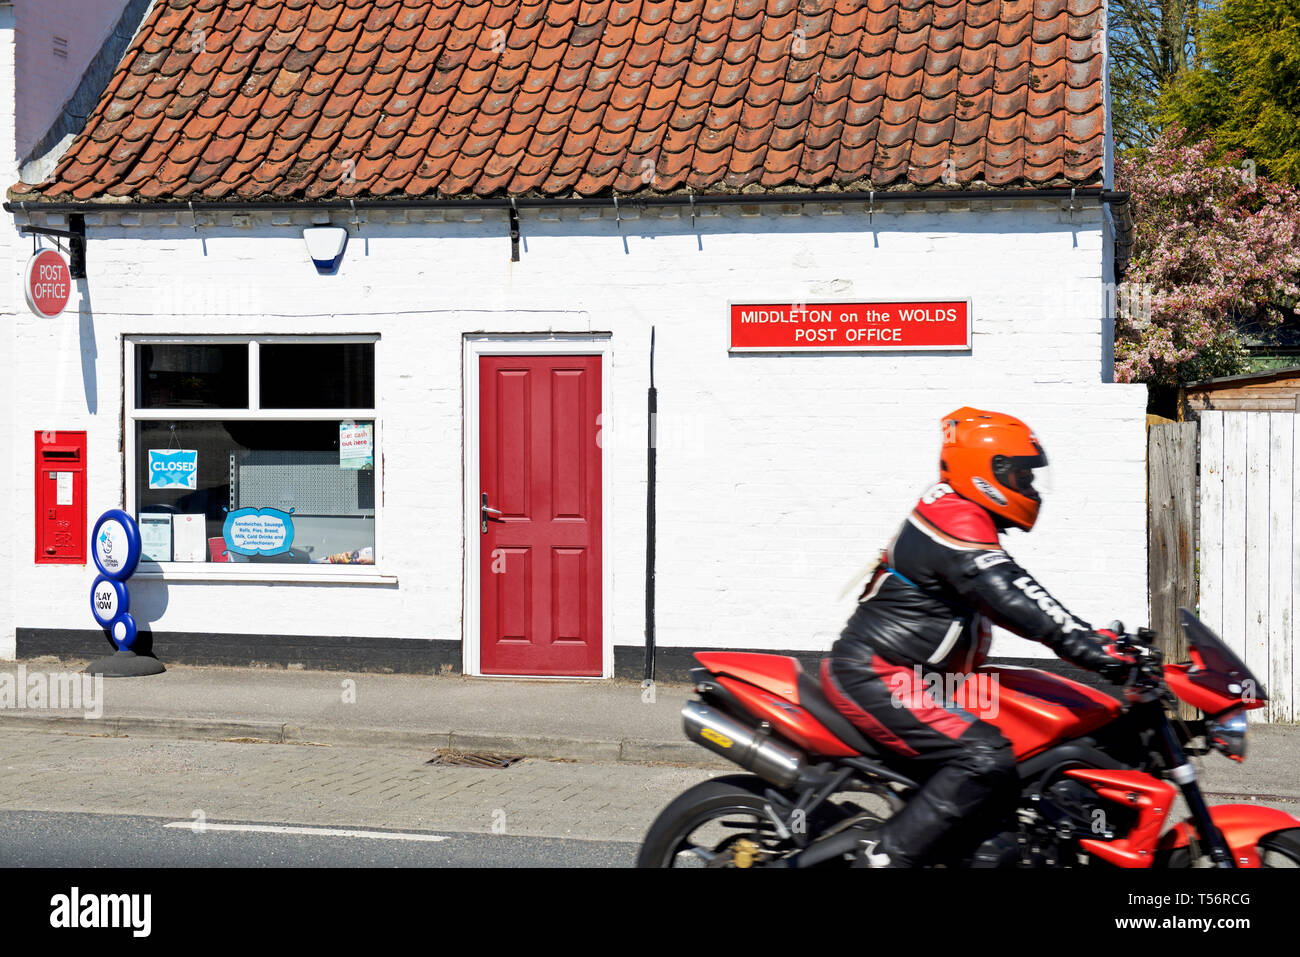 Post Office in the village of Middleton on the Wolds, East Yorkshire, England UK - Stock Image